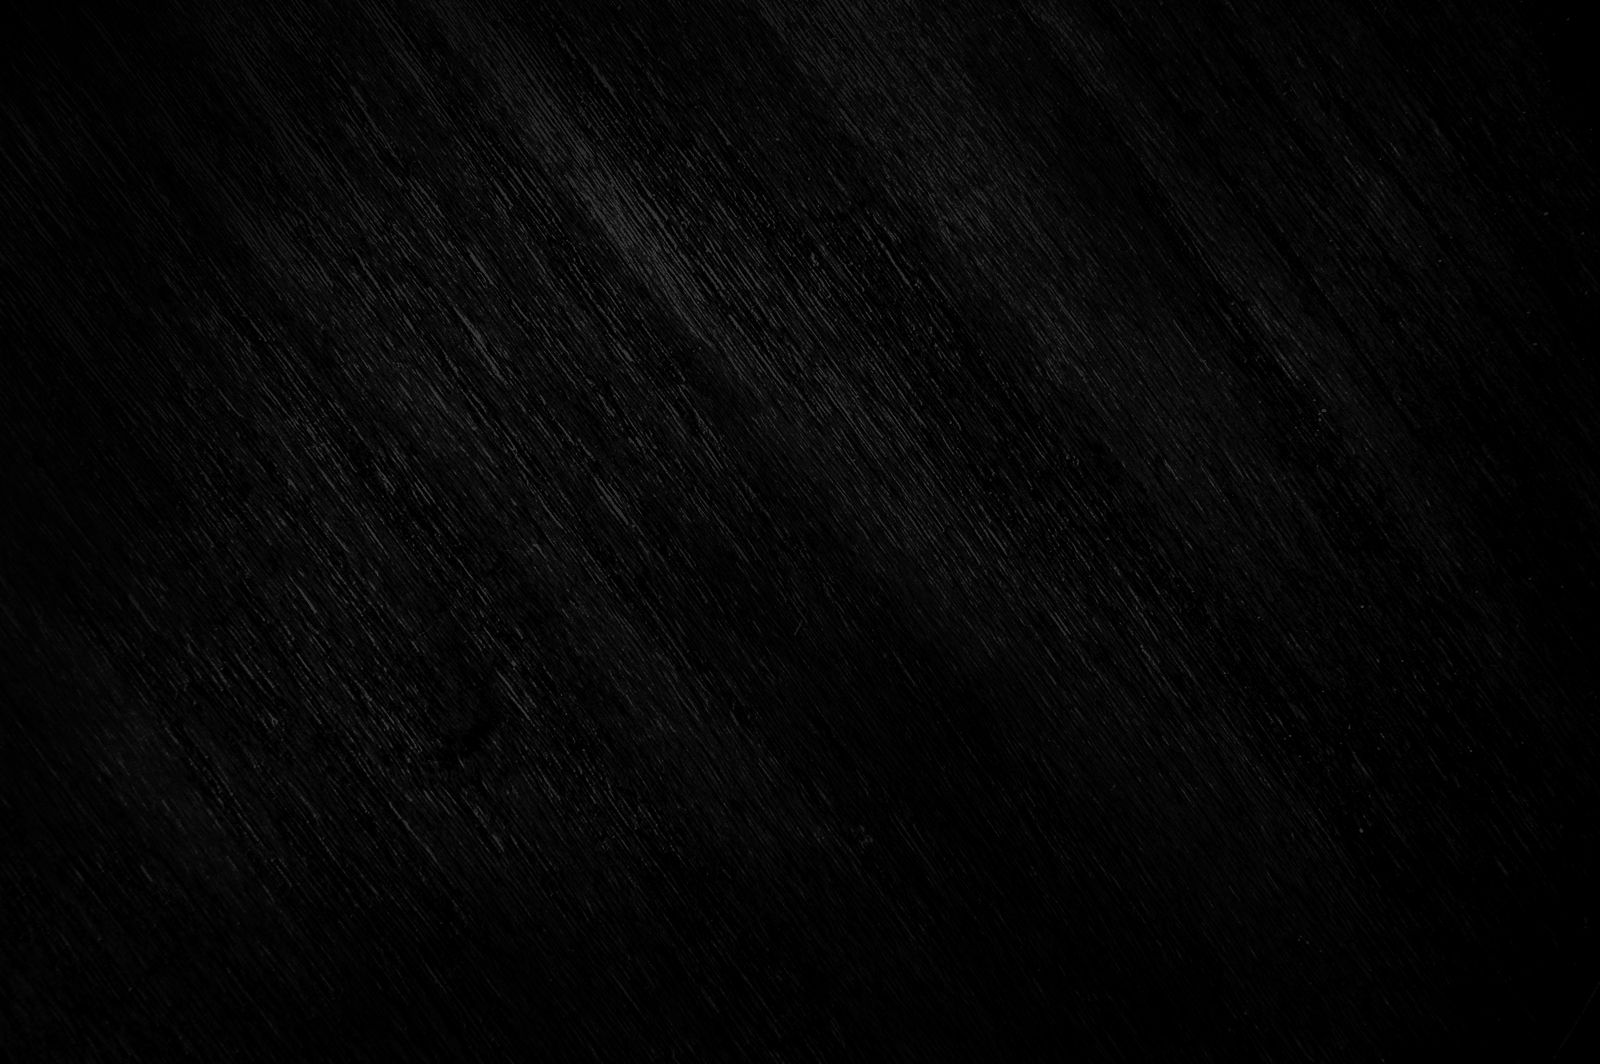 1064 grey wood slant looking for dark textured wallpapers Black 1600x1064